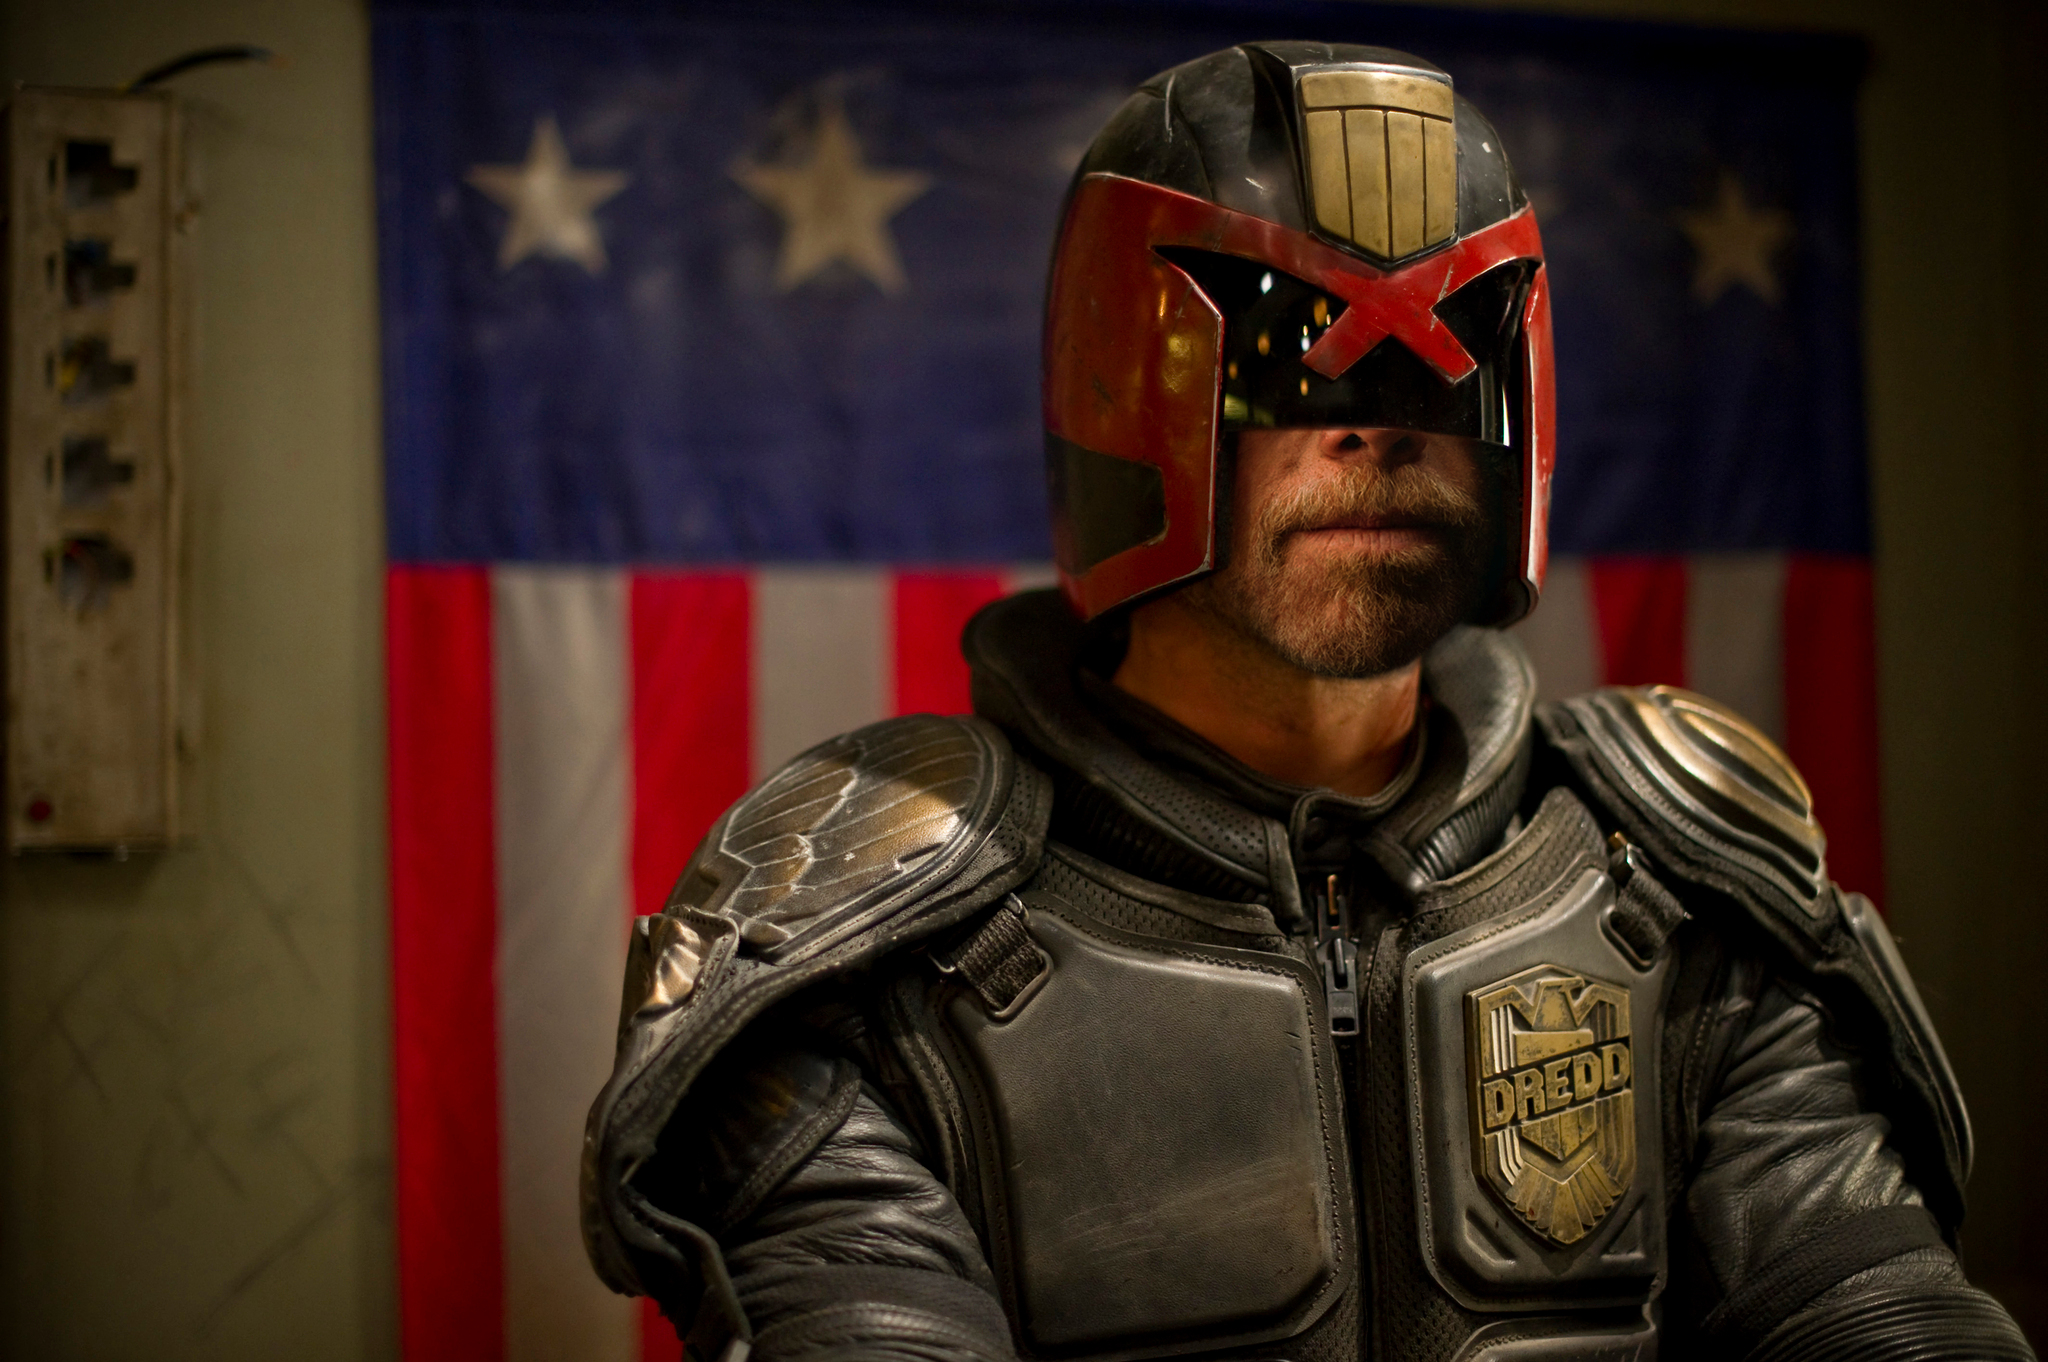 Photo: I enjoyed both Dredd movies. The 1995 Judge Dredd movie is one of those I could watch again and again no matter how bad review it gets. In 2012 remake Karl Urban is as brutal as Stallone. Now the question is, when will Ron Perlman play Dredd?